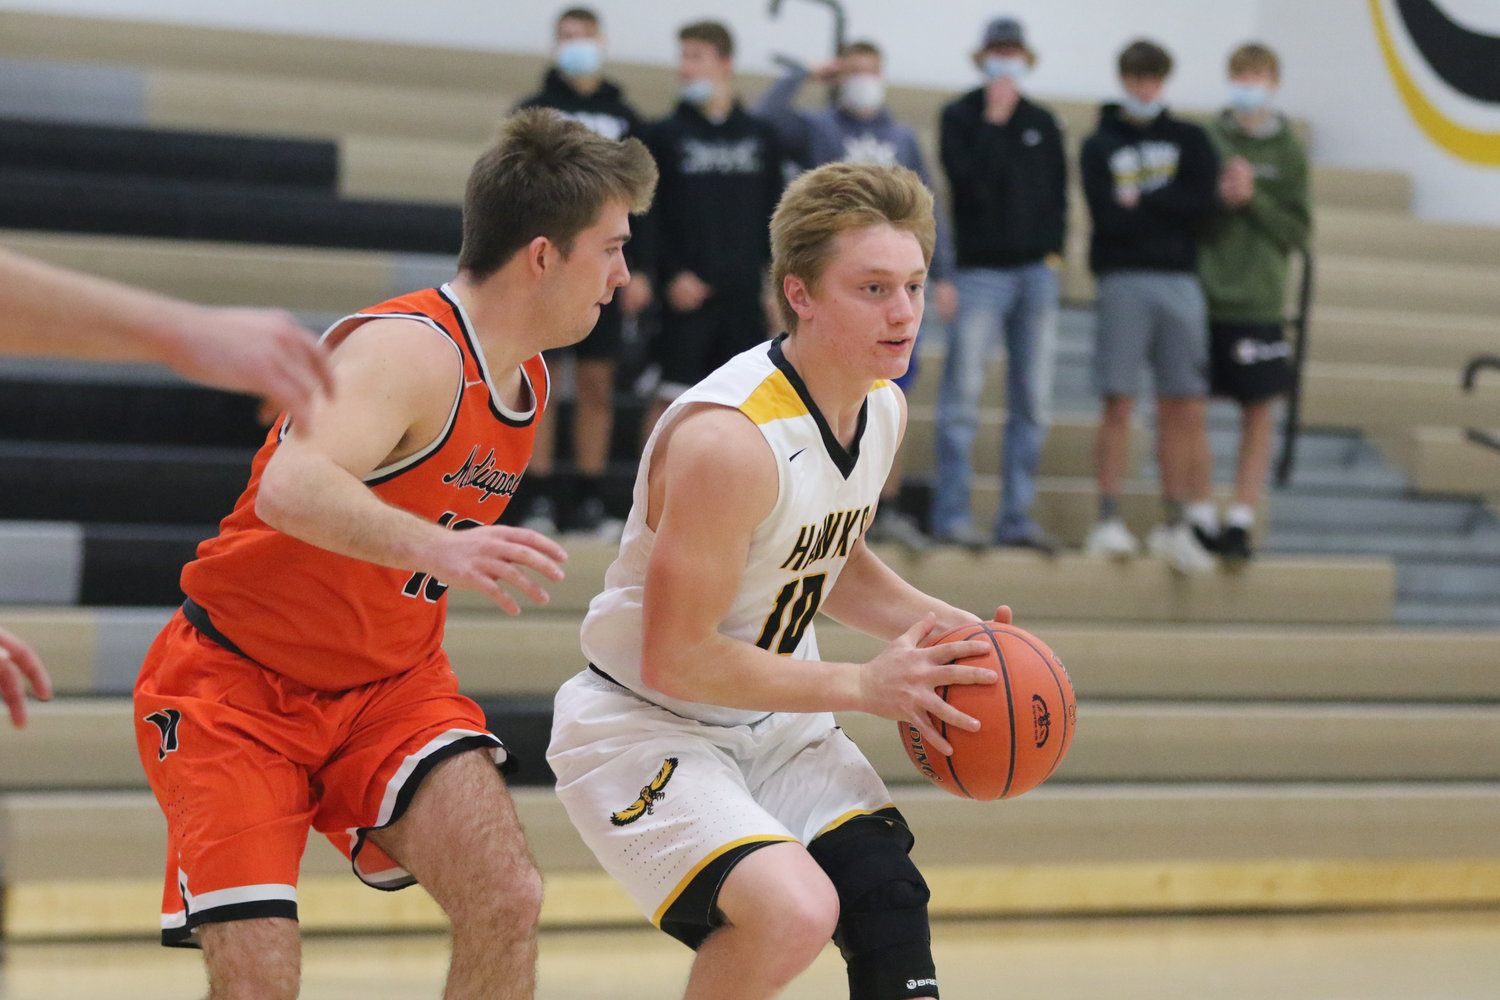 Mid-Prairie guard Luke Boyse looks for a teammate during the first quarter of a scrimmage with Mediapolis in Wellman on Saturday, November 21.